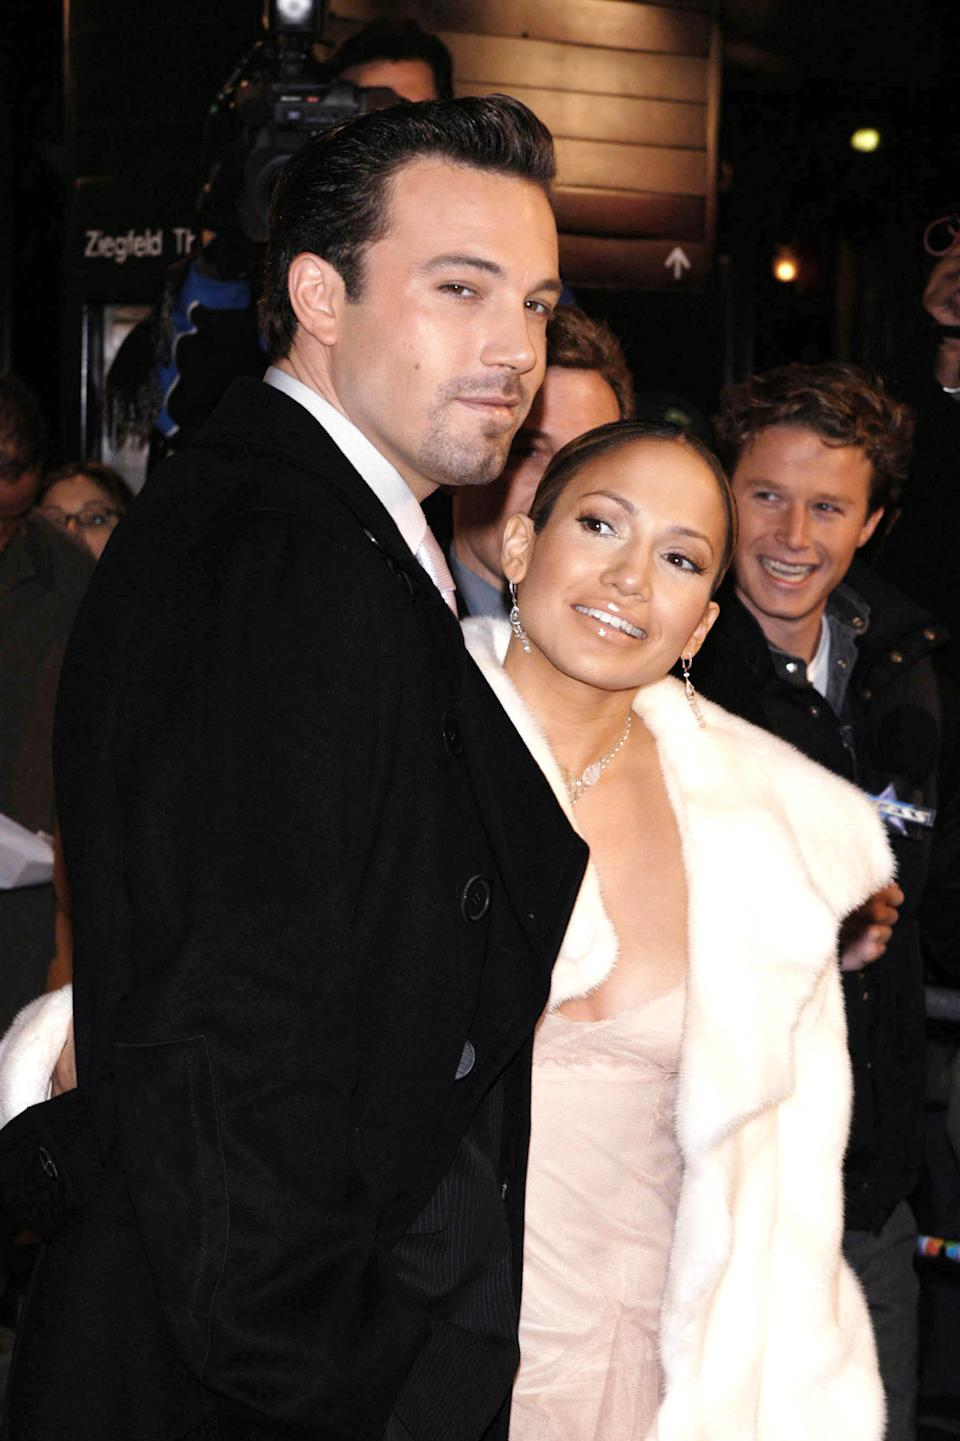 Photo by: Peter Kramer STAR MAX, Inc. - copyright 2002 ALL RIGHTS RESERVED Telephone/Fax: (212) 995-1196 12/8/02 Ben Affleck and Jennifer Lopez at the premiere of